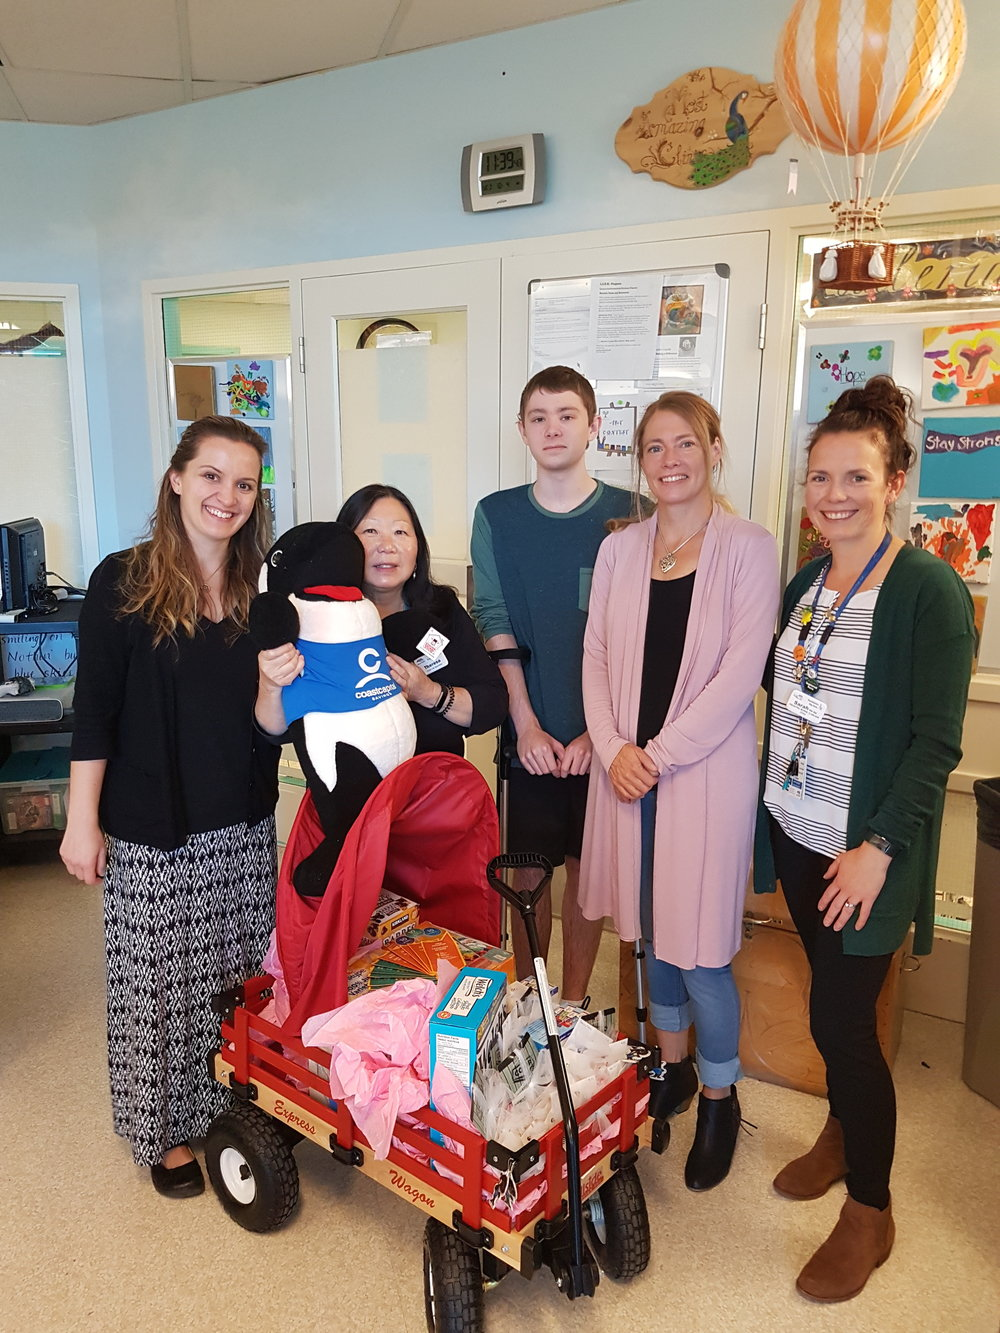 From left to right: Dr. Ewa Lunaczek-Motyka (Pediatric Oncologist), Theresa Low (Child Life Specialist), Jacob Kerr (Super Hero), Susan Kerr (CARE 4 Kids Program Coordinator), Sarah Fitton (Pediatric Oncology Nurse Clinician)